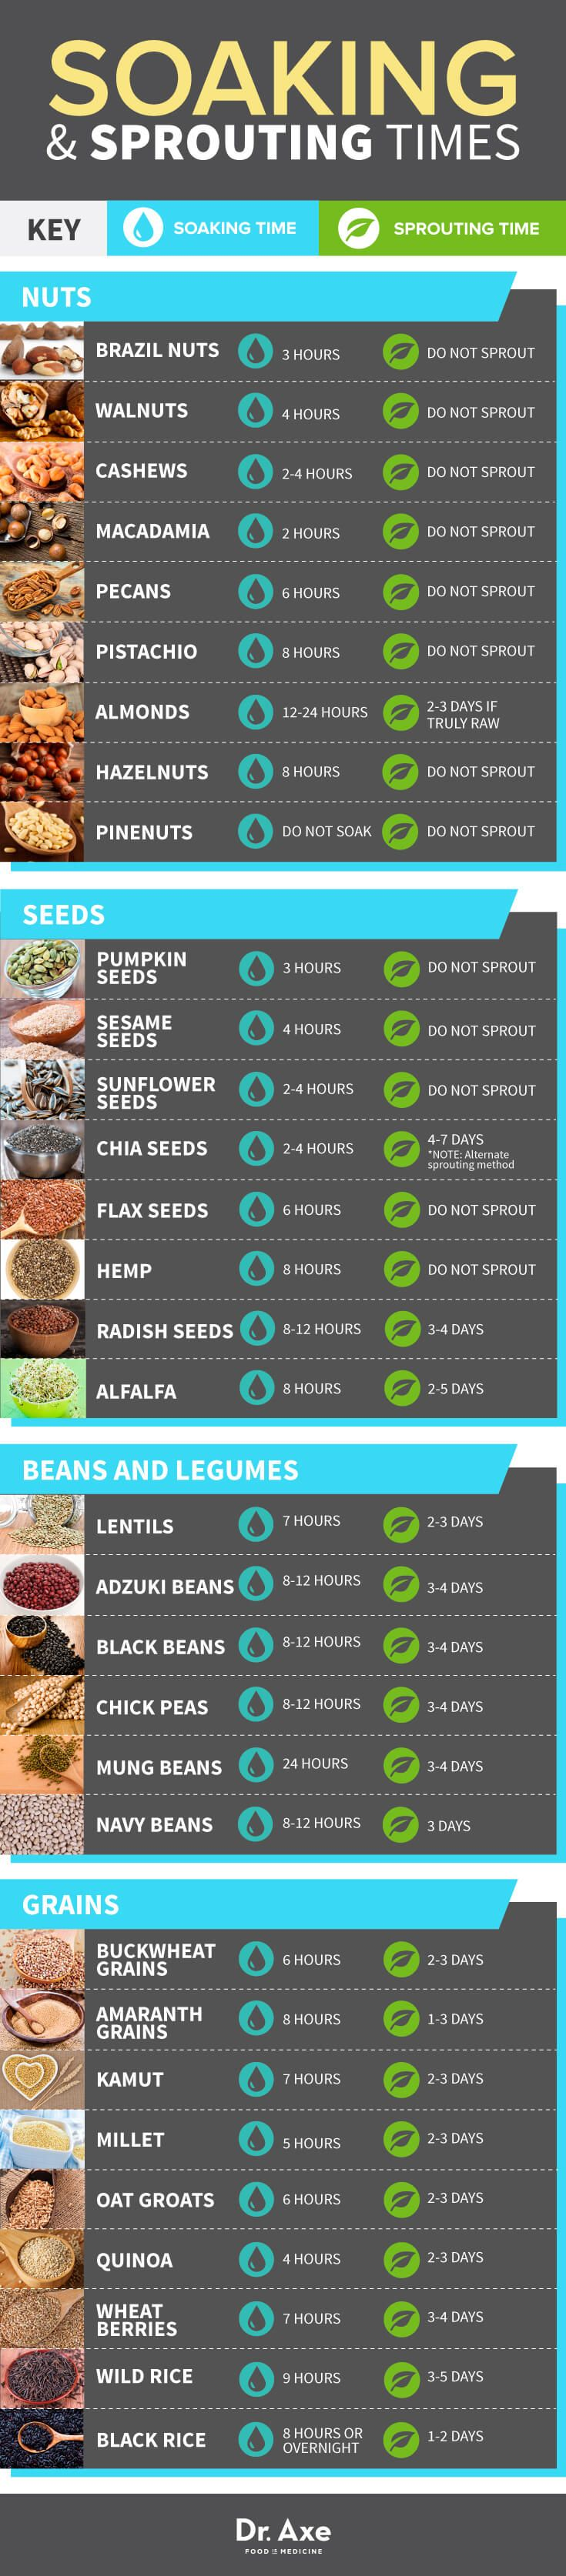 Soaking & Sprouting Times for nuts, seeds, beans, legumes, and grains #health #nutrition #food